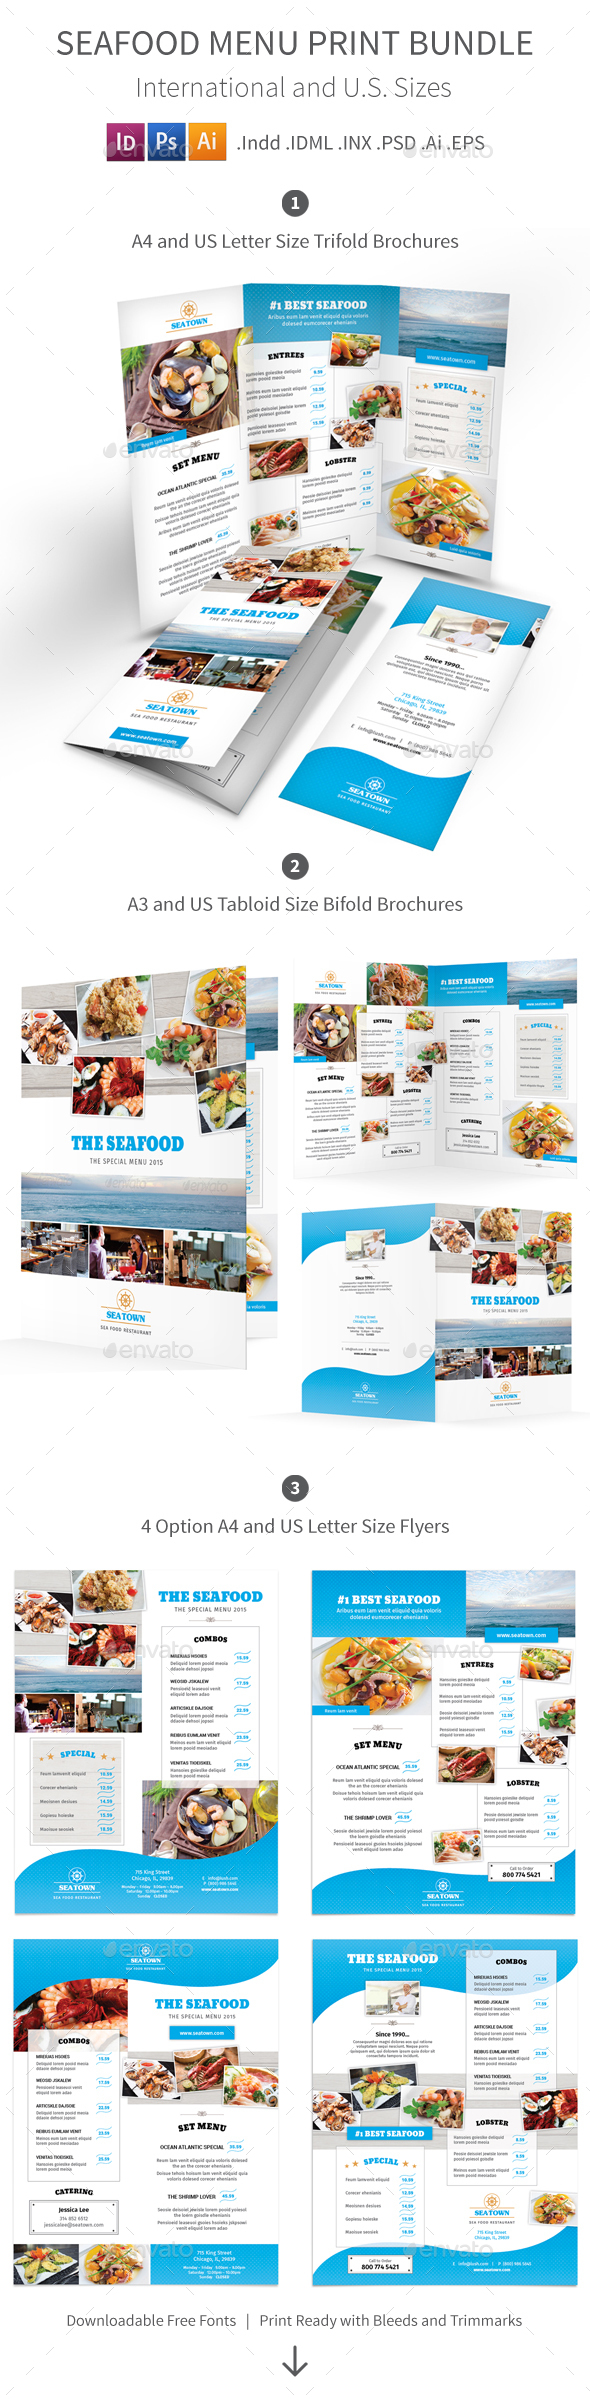 Seafood Restaurant Menu Print Bundle - Food Menus Print Templates